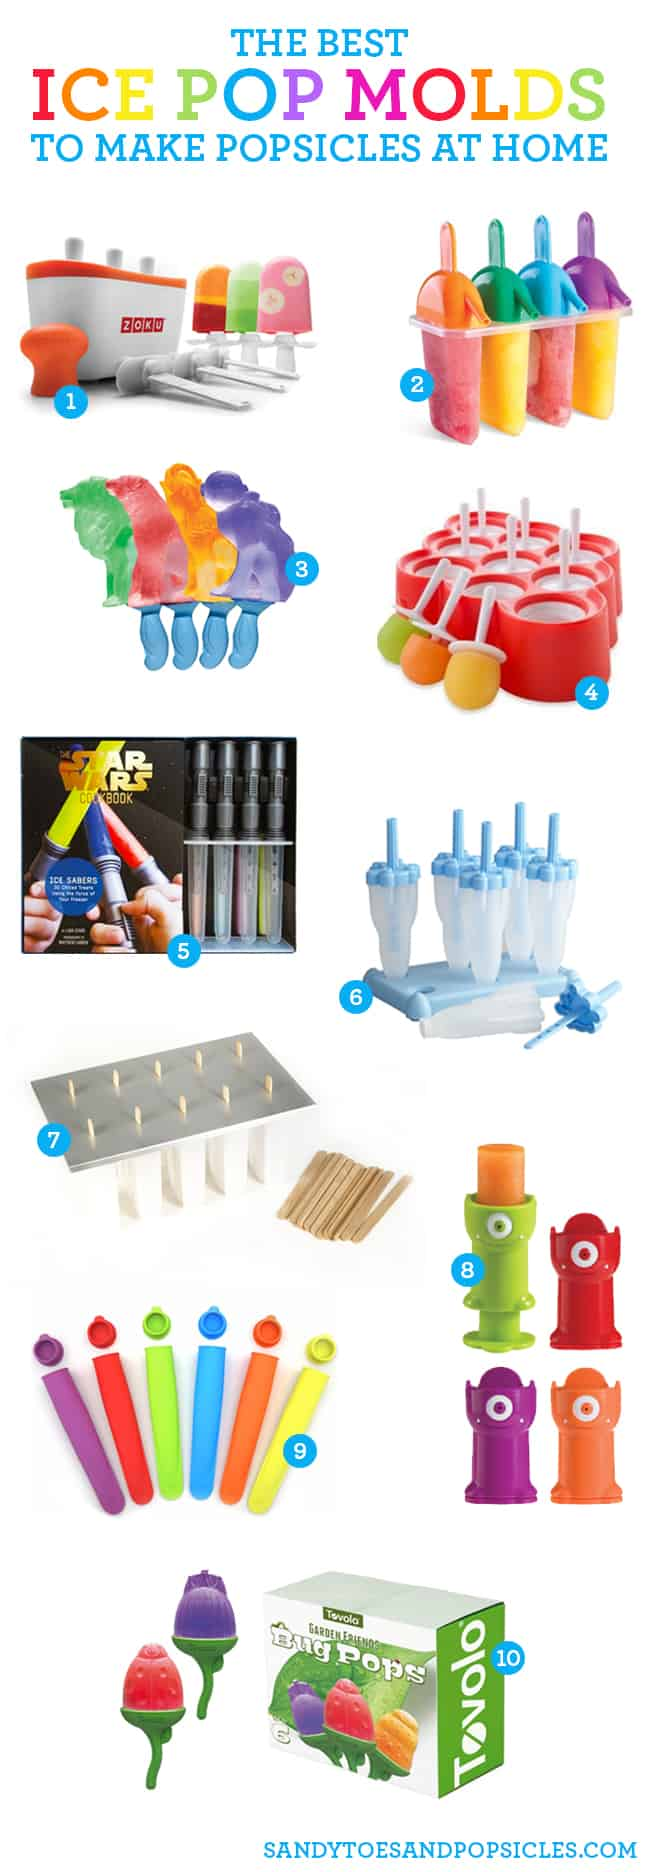 10 Great Ice Pop Molds To Make Homemade Popsicles